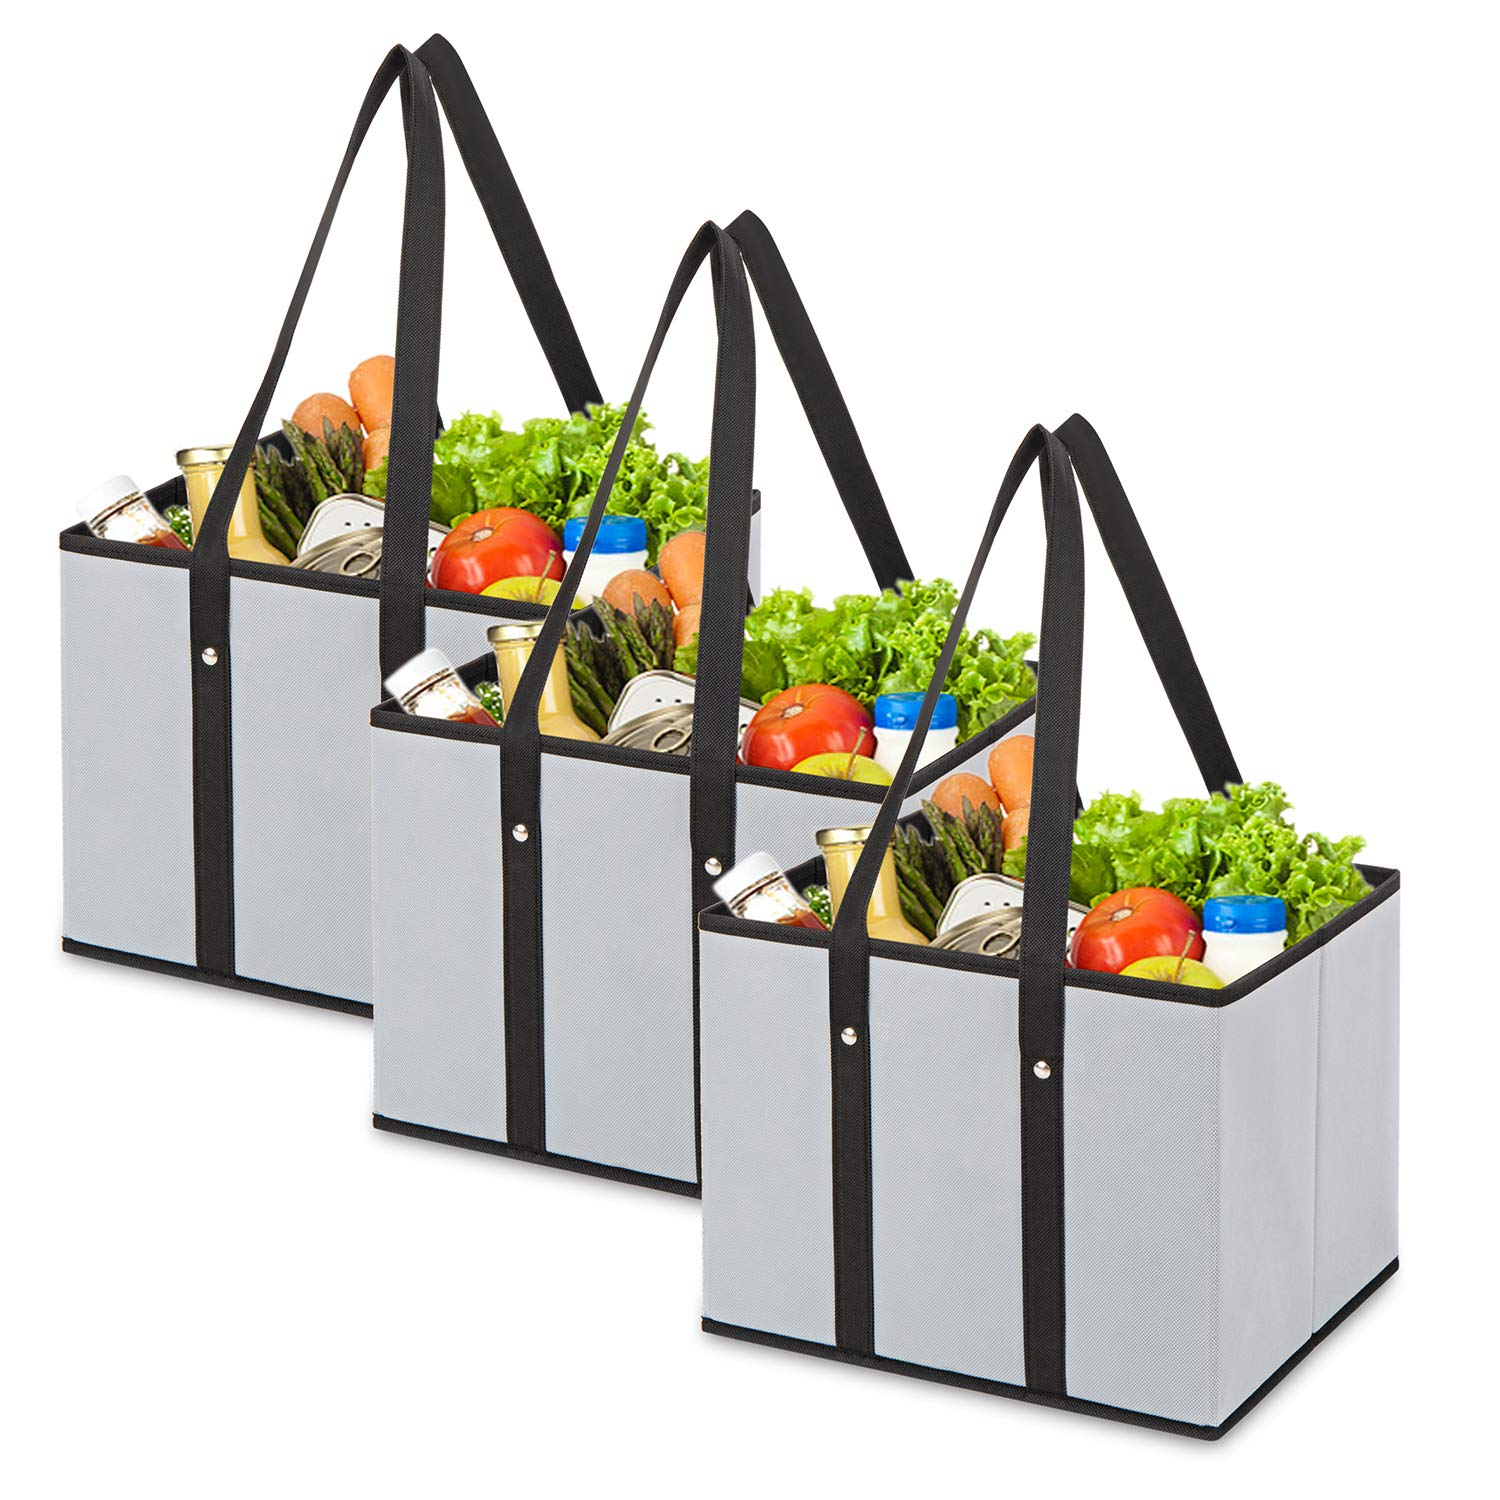 MaidMAX Reusable Grocery Bags, Collapsible Grocery Organizer with Reinforced Bottom, Foldable, Grey, Set of 3